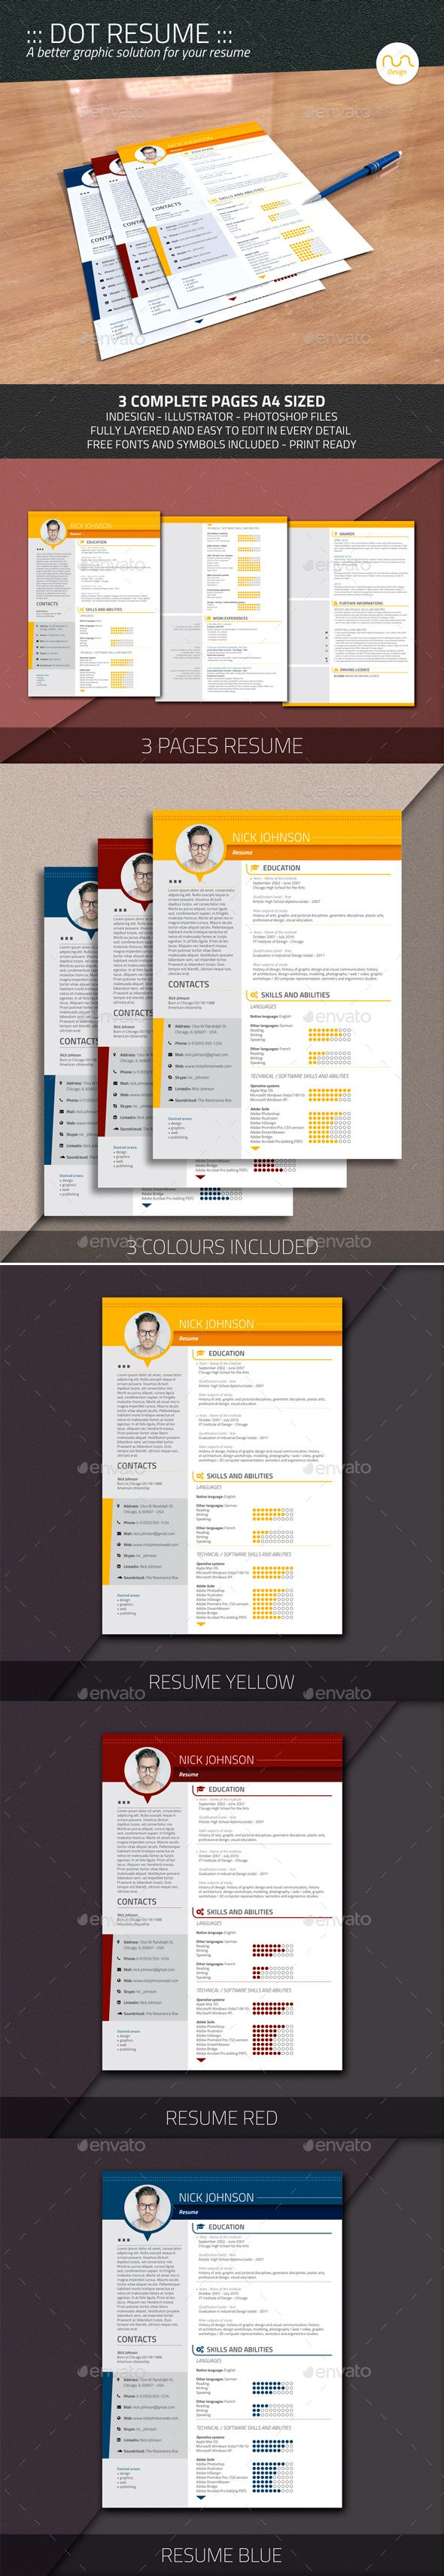 Ai Resume Template - Picture Ideas References